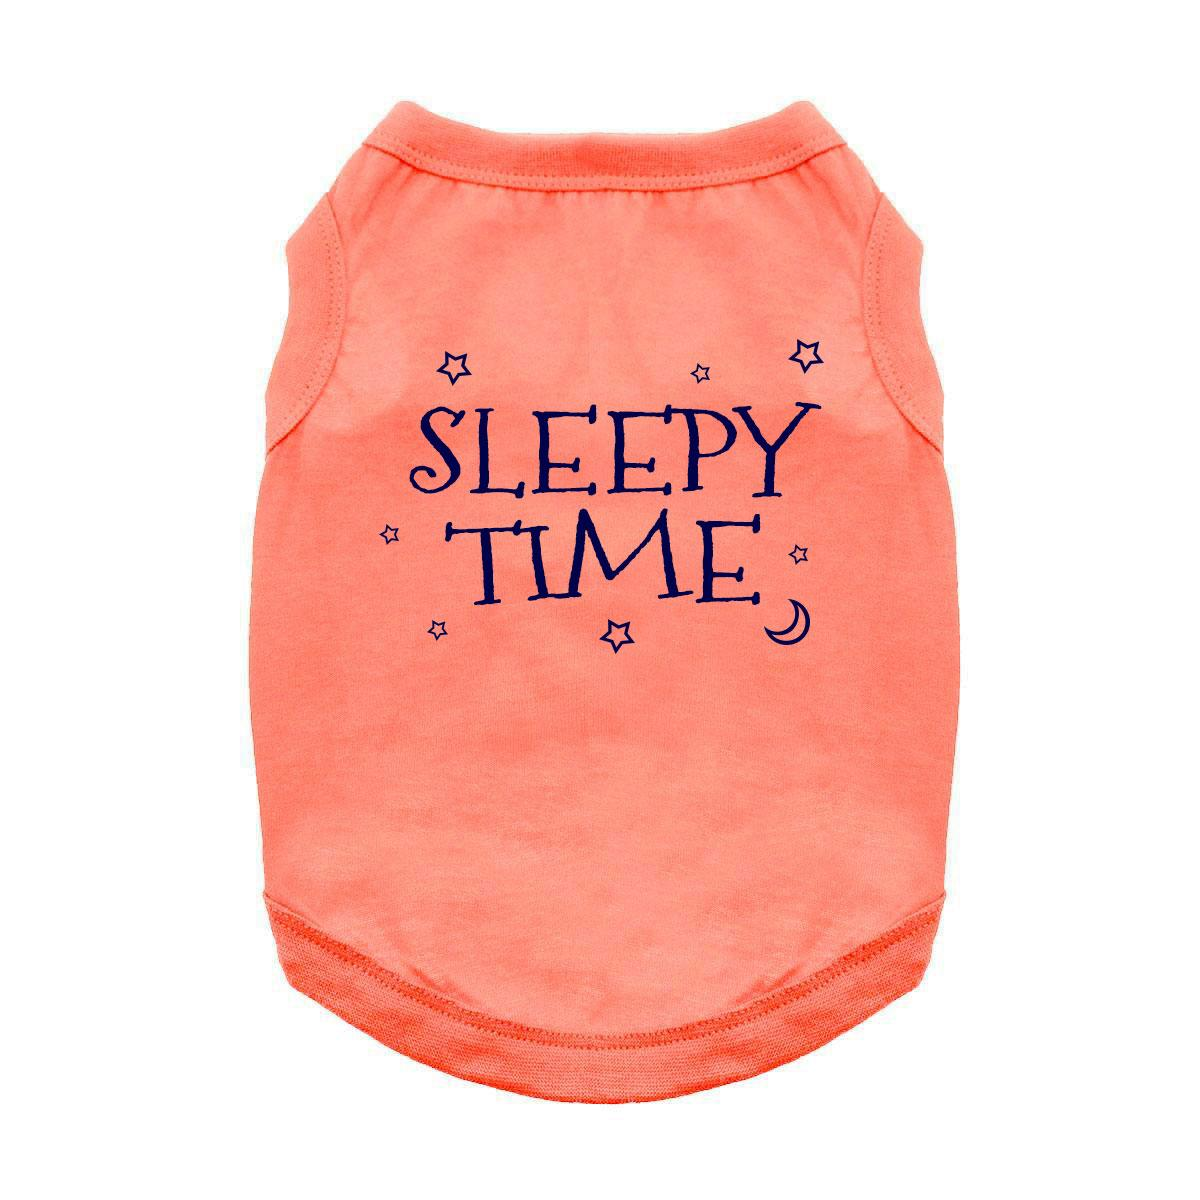 Sleepy Time Dog Shirt - Coral